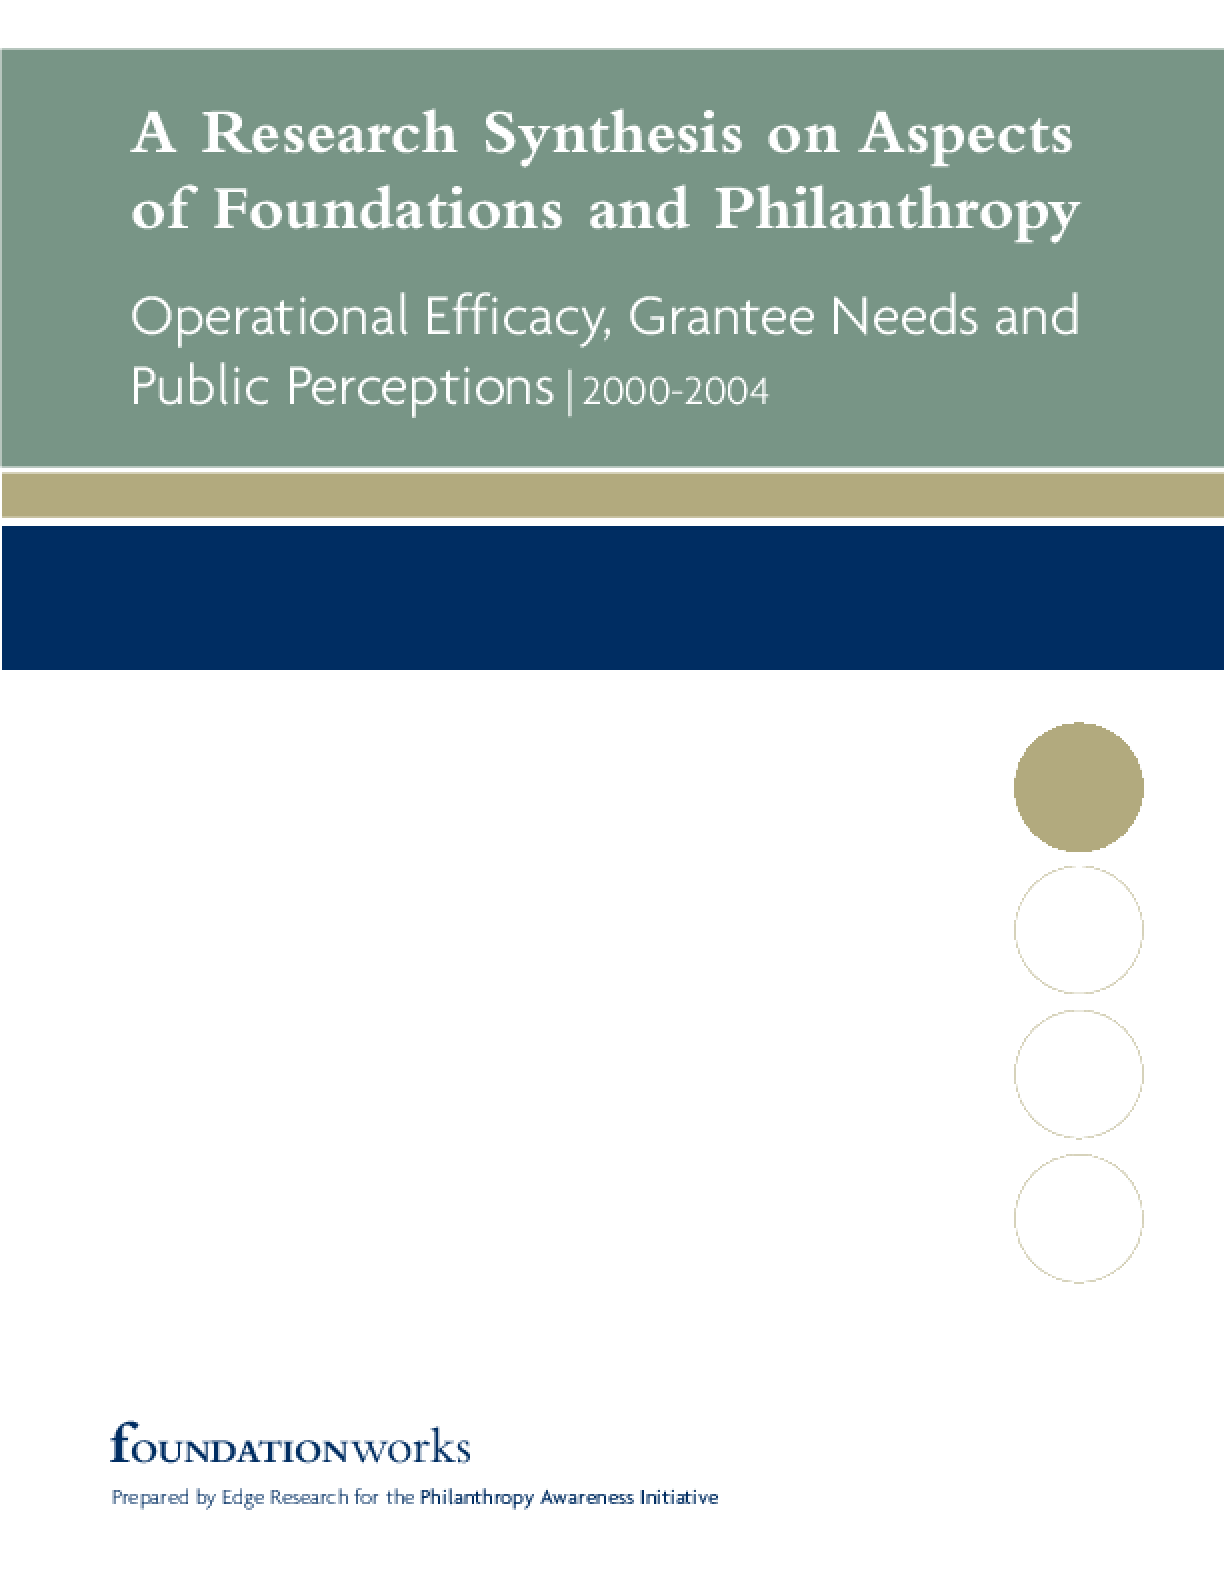 A Research Synthesis On Aspects of Foundations and Philanthropy: Operational Efficacy, Grantee Needs and Public Perceptions 2000-2004